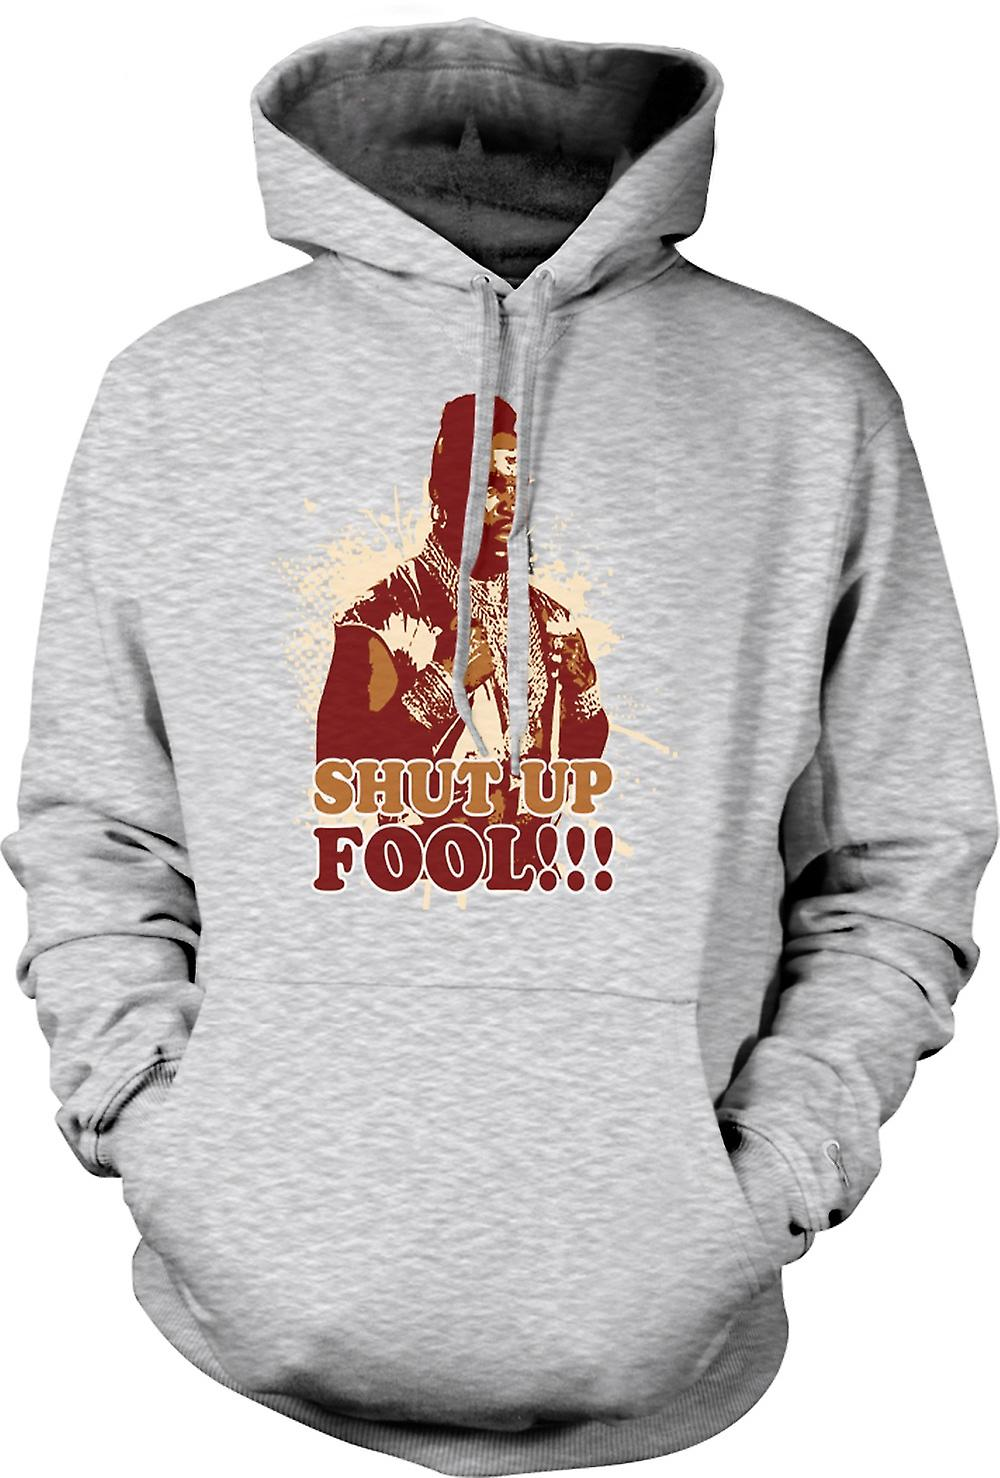 Mens Hoodie - Mr. T Shut Up Fool a-Team